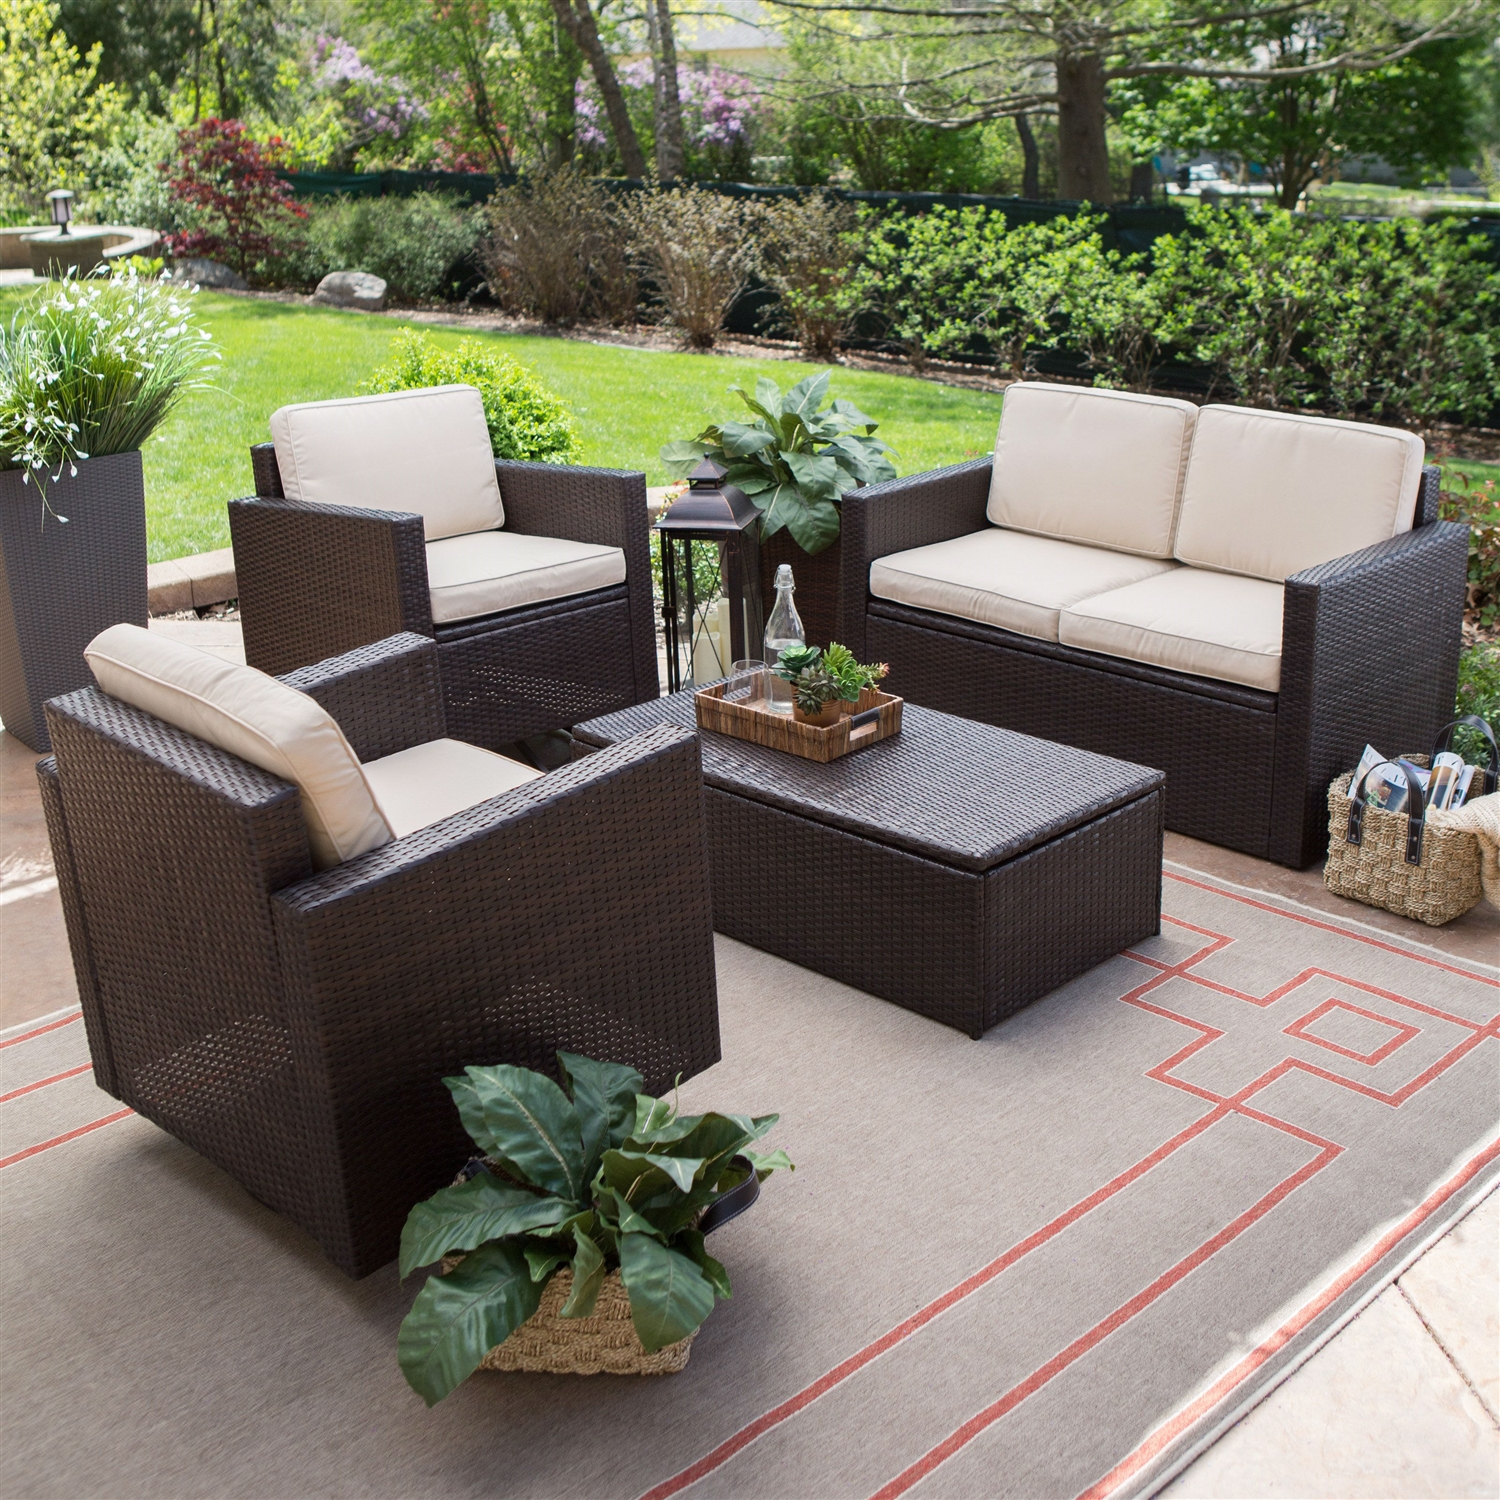 Outdoor Wicker Resin 4-Piece Patio Furniture Dinning Set with 2 Chairs  Loveseat and Coffee Table | Fastfurnishings.com - Outdoor Wicker Resin 4-Piece Patio Furniture Dinning Set With 2